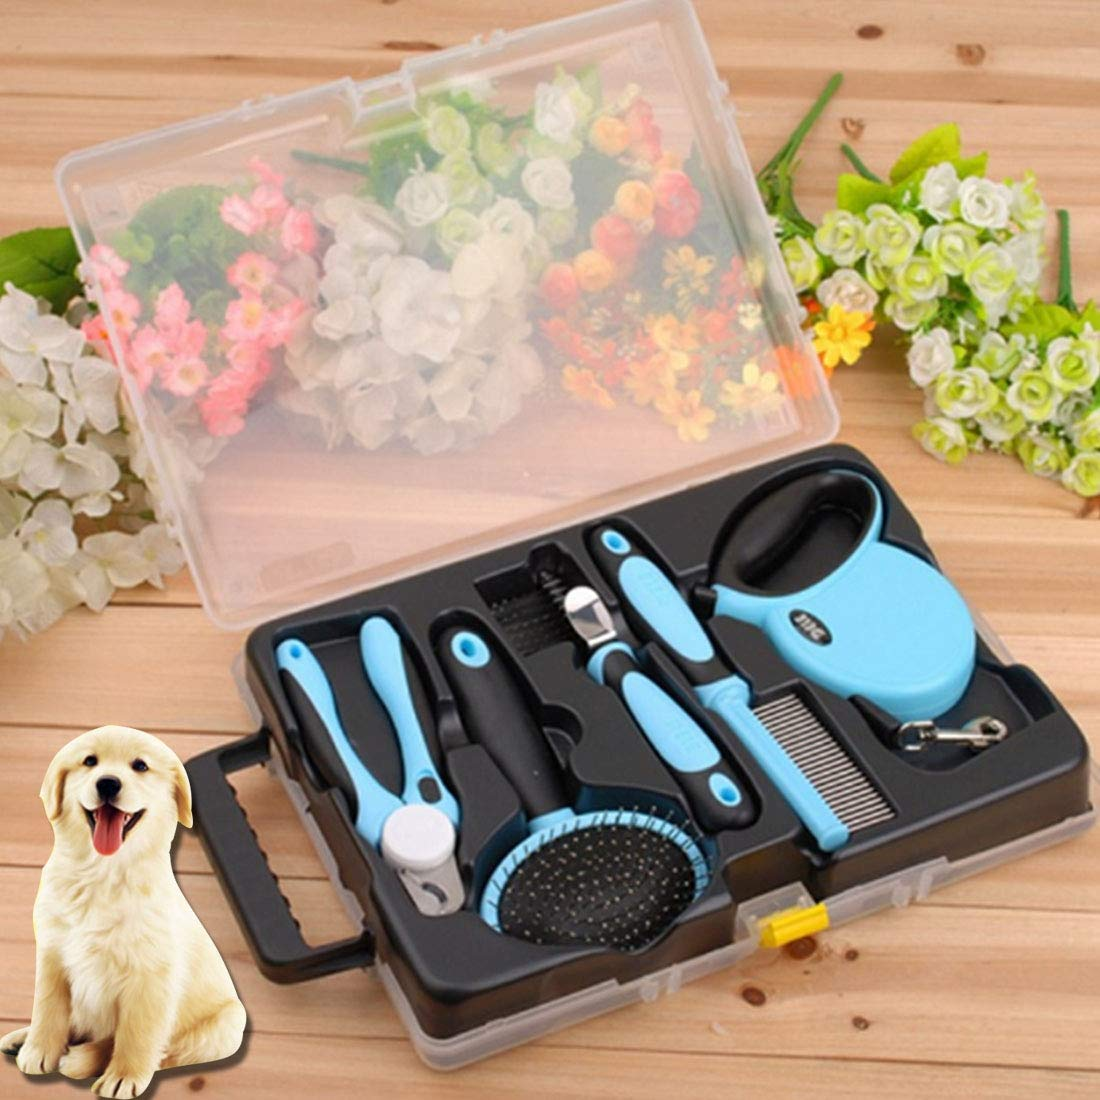 PDCH AY0 Pet Five Piece Set 3m Retractable Traction Rope + Combs + Detangling Comb + Gilling + Nail Clippers by PDCH